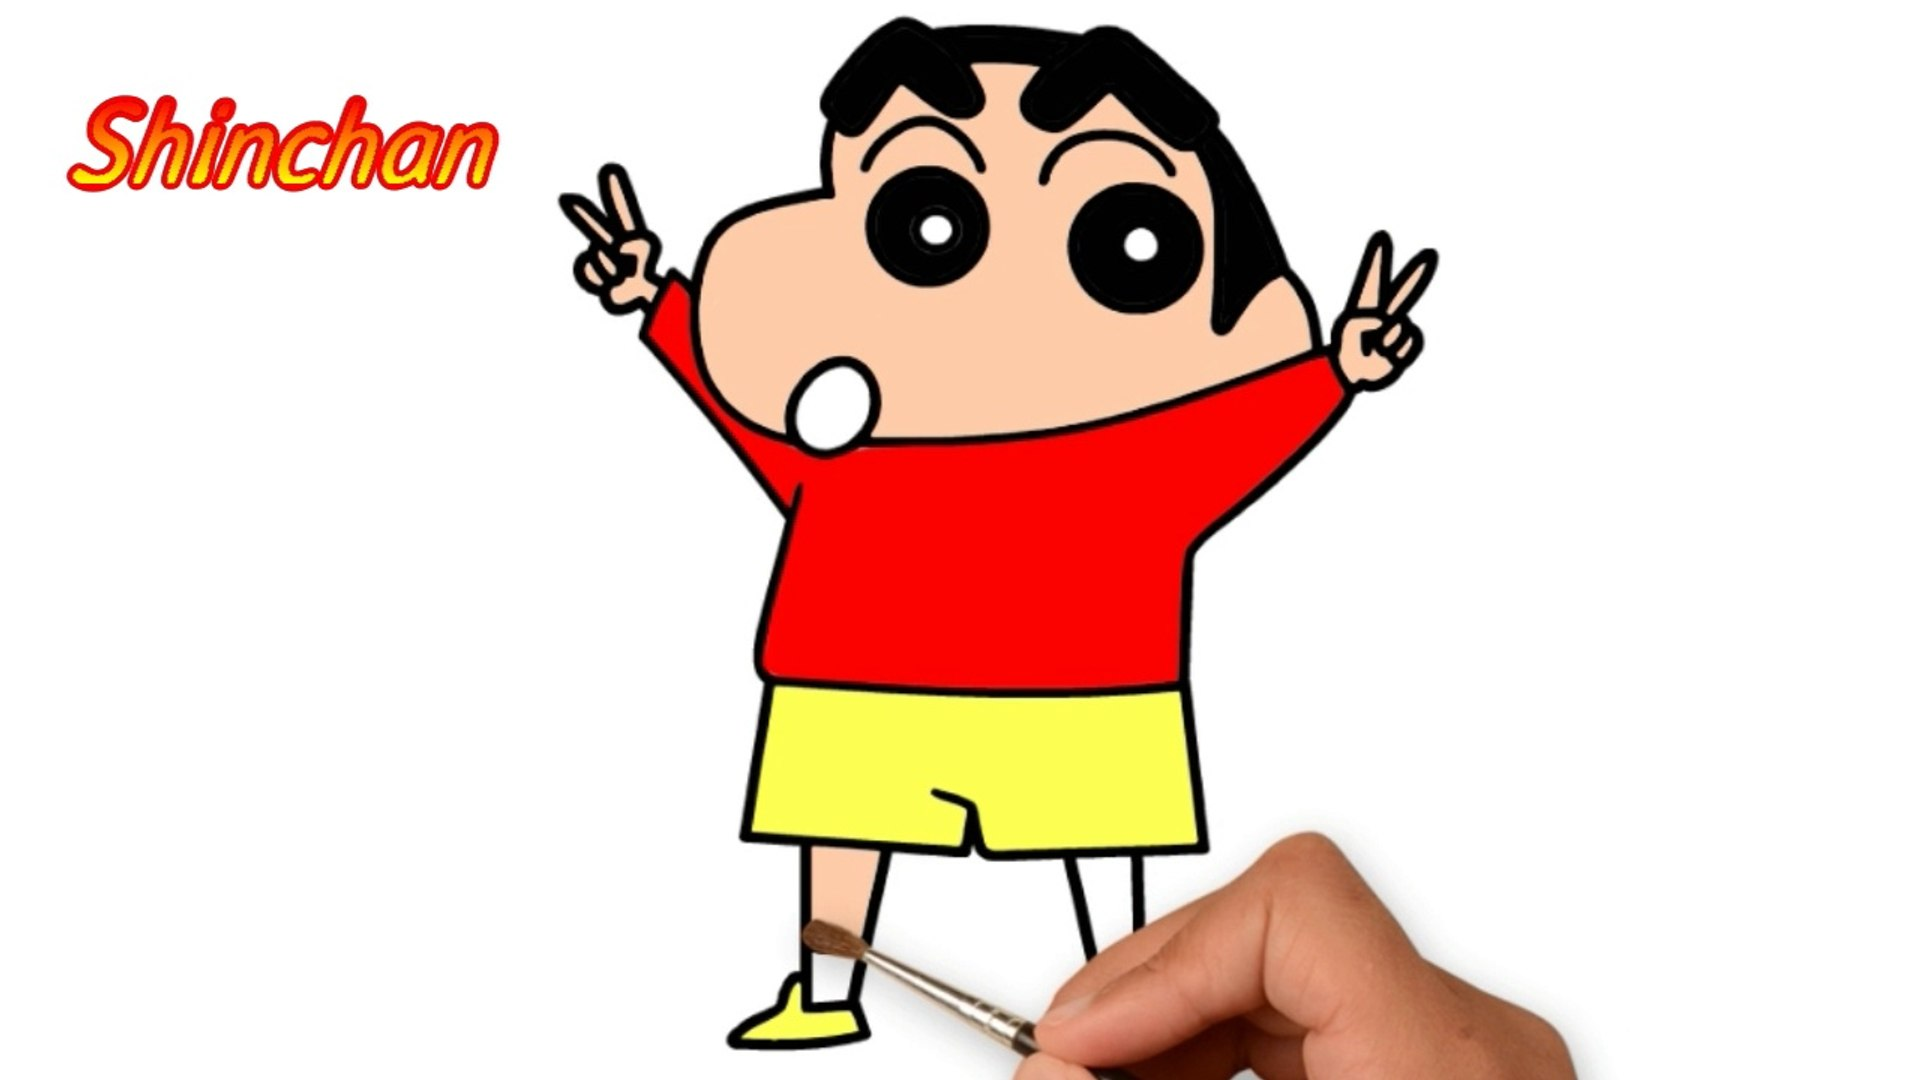 Learn Easy Way To Draw Shinchan Coloring Pages For Kids Step By Step Method Drawing For Kids Drawing And Coloring Tutorial Video Dailymotion